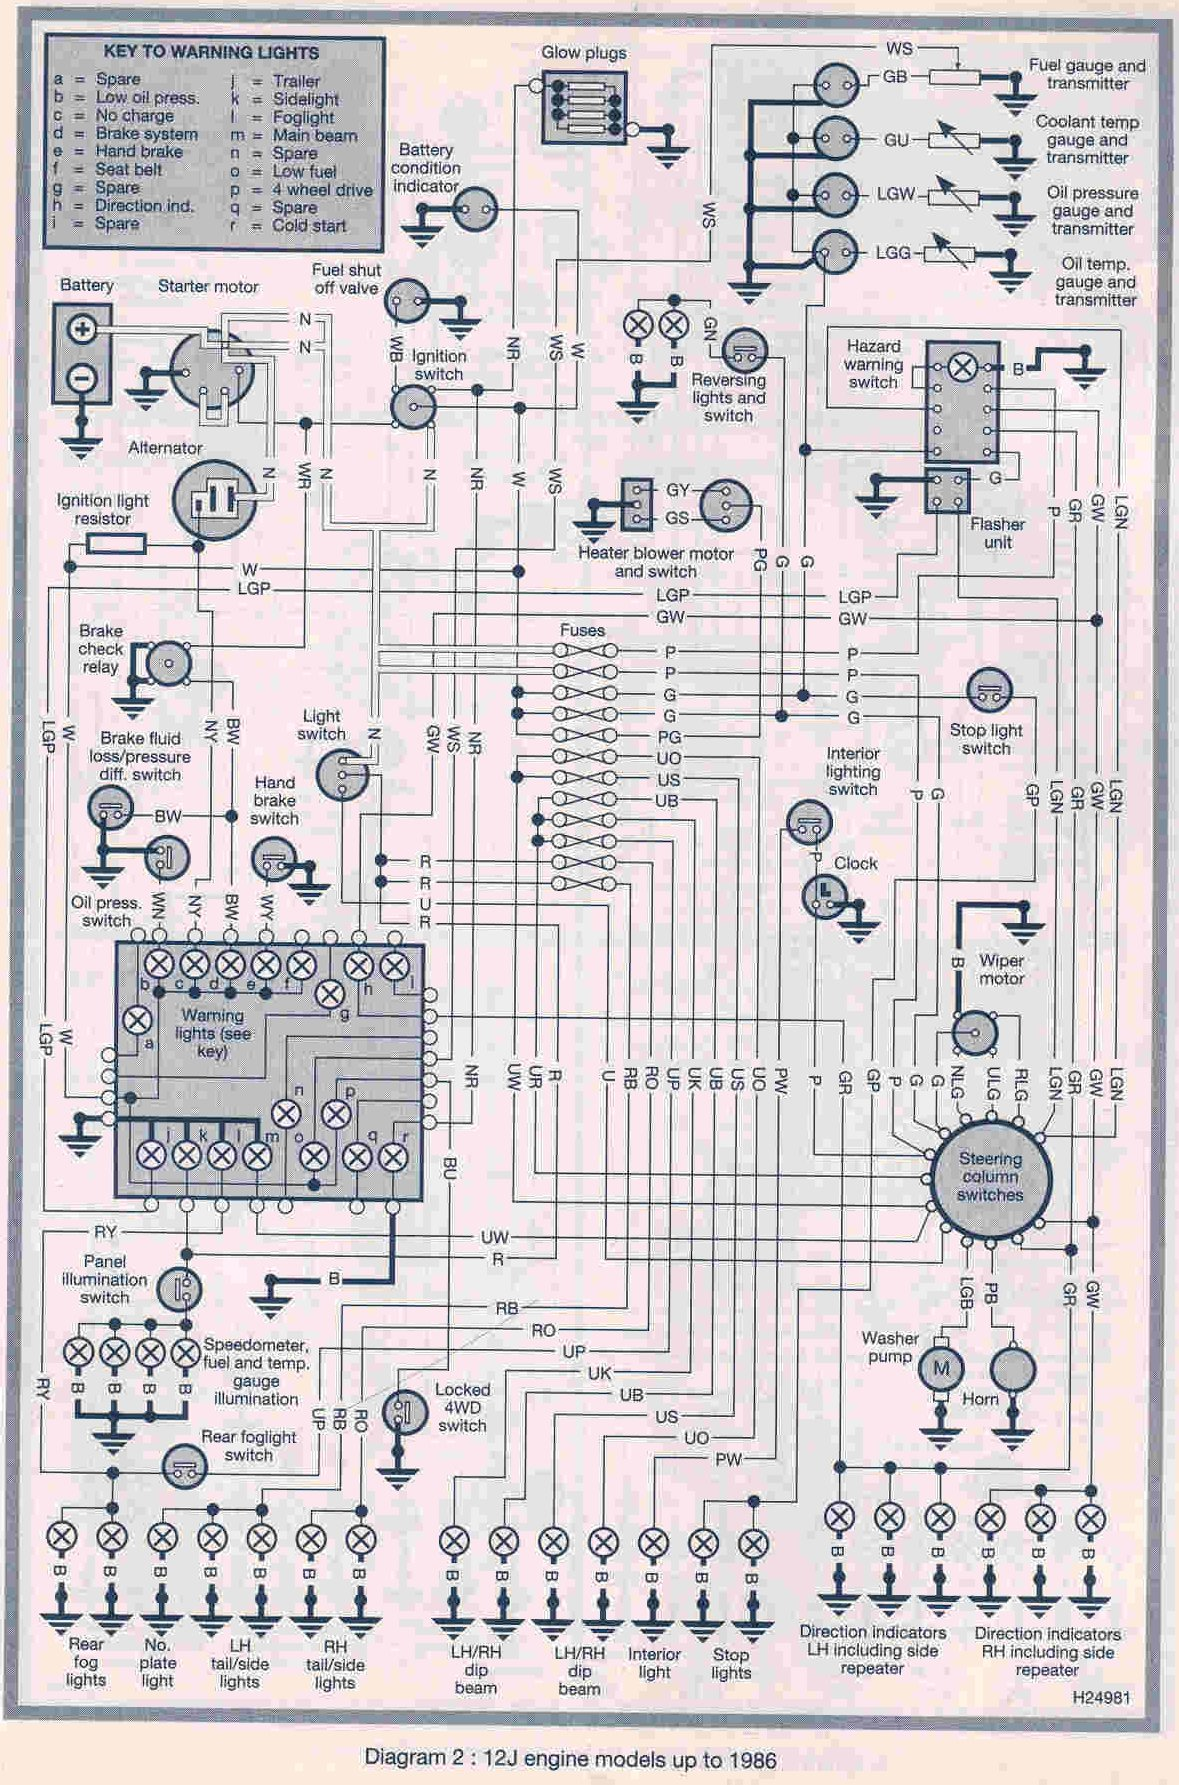 hight resolution of 1986 land rover 90 wiring diagram wiring diagrams konsult1986 land rover 90 wiring diagram wiring library